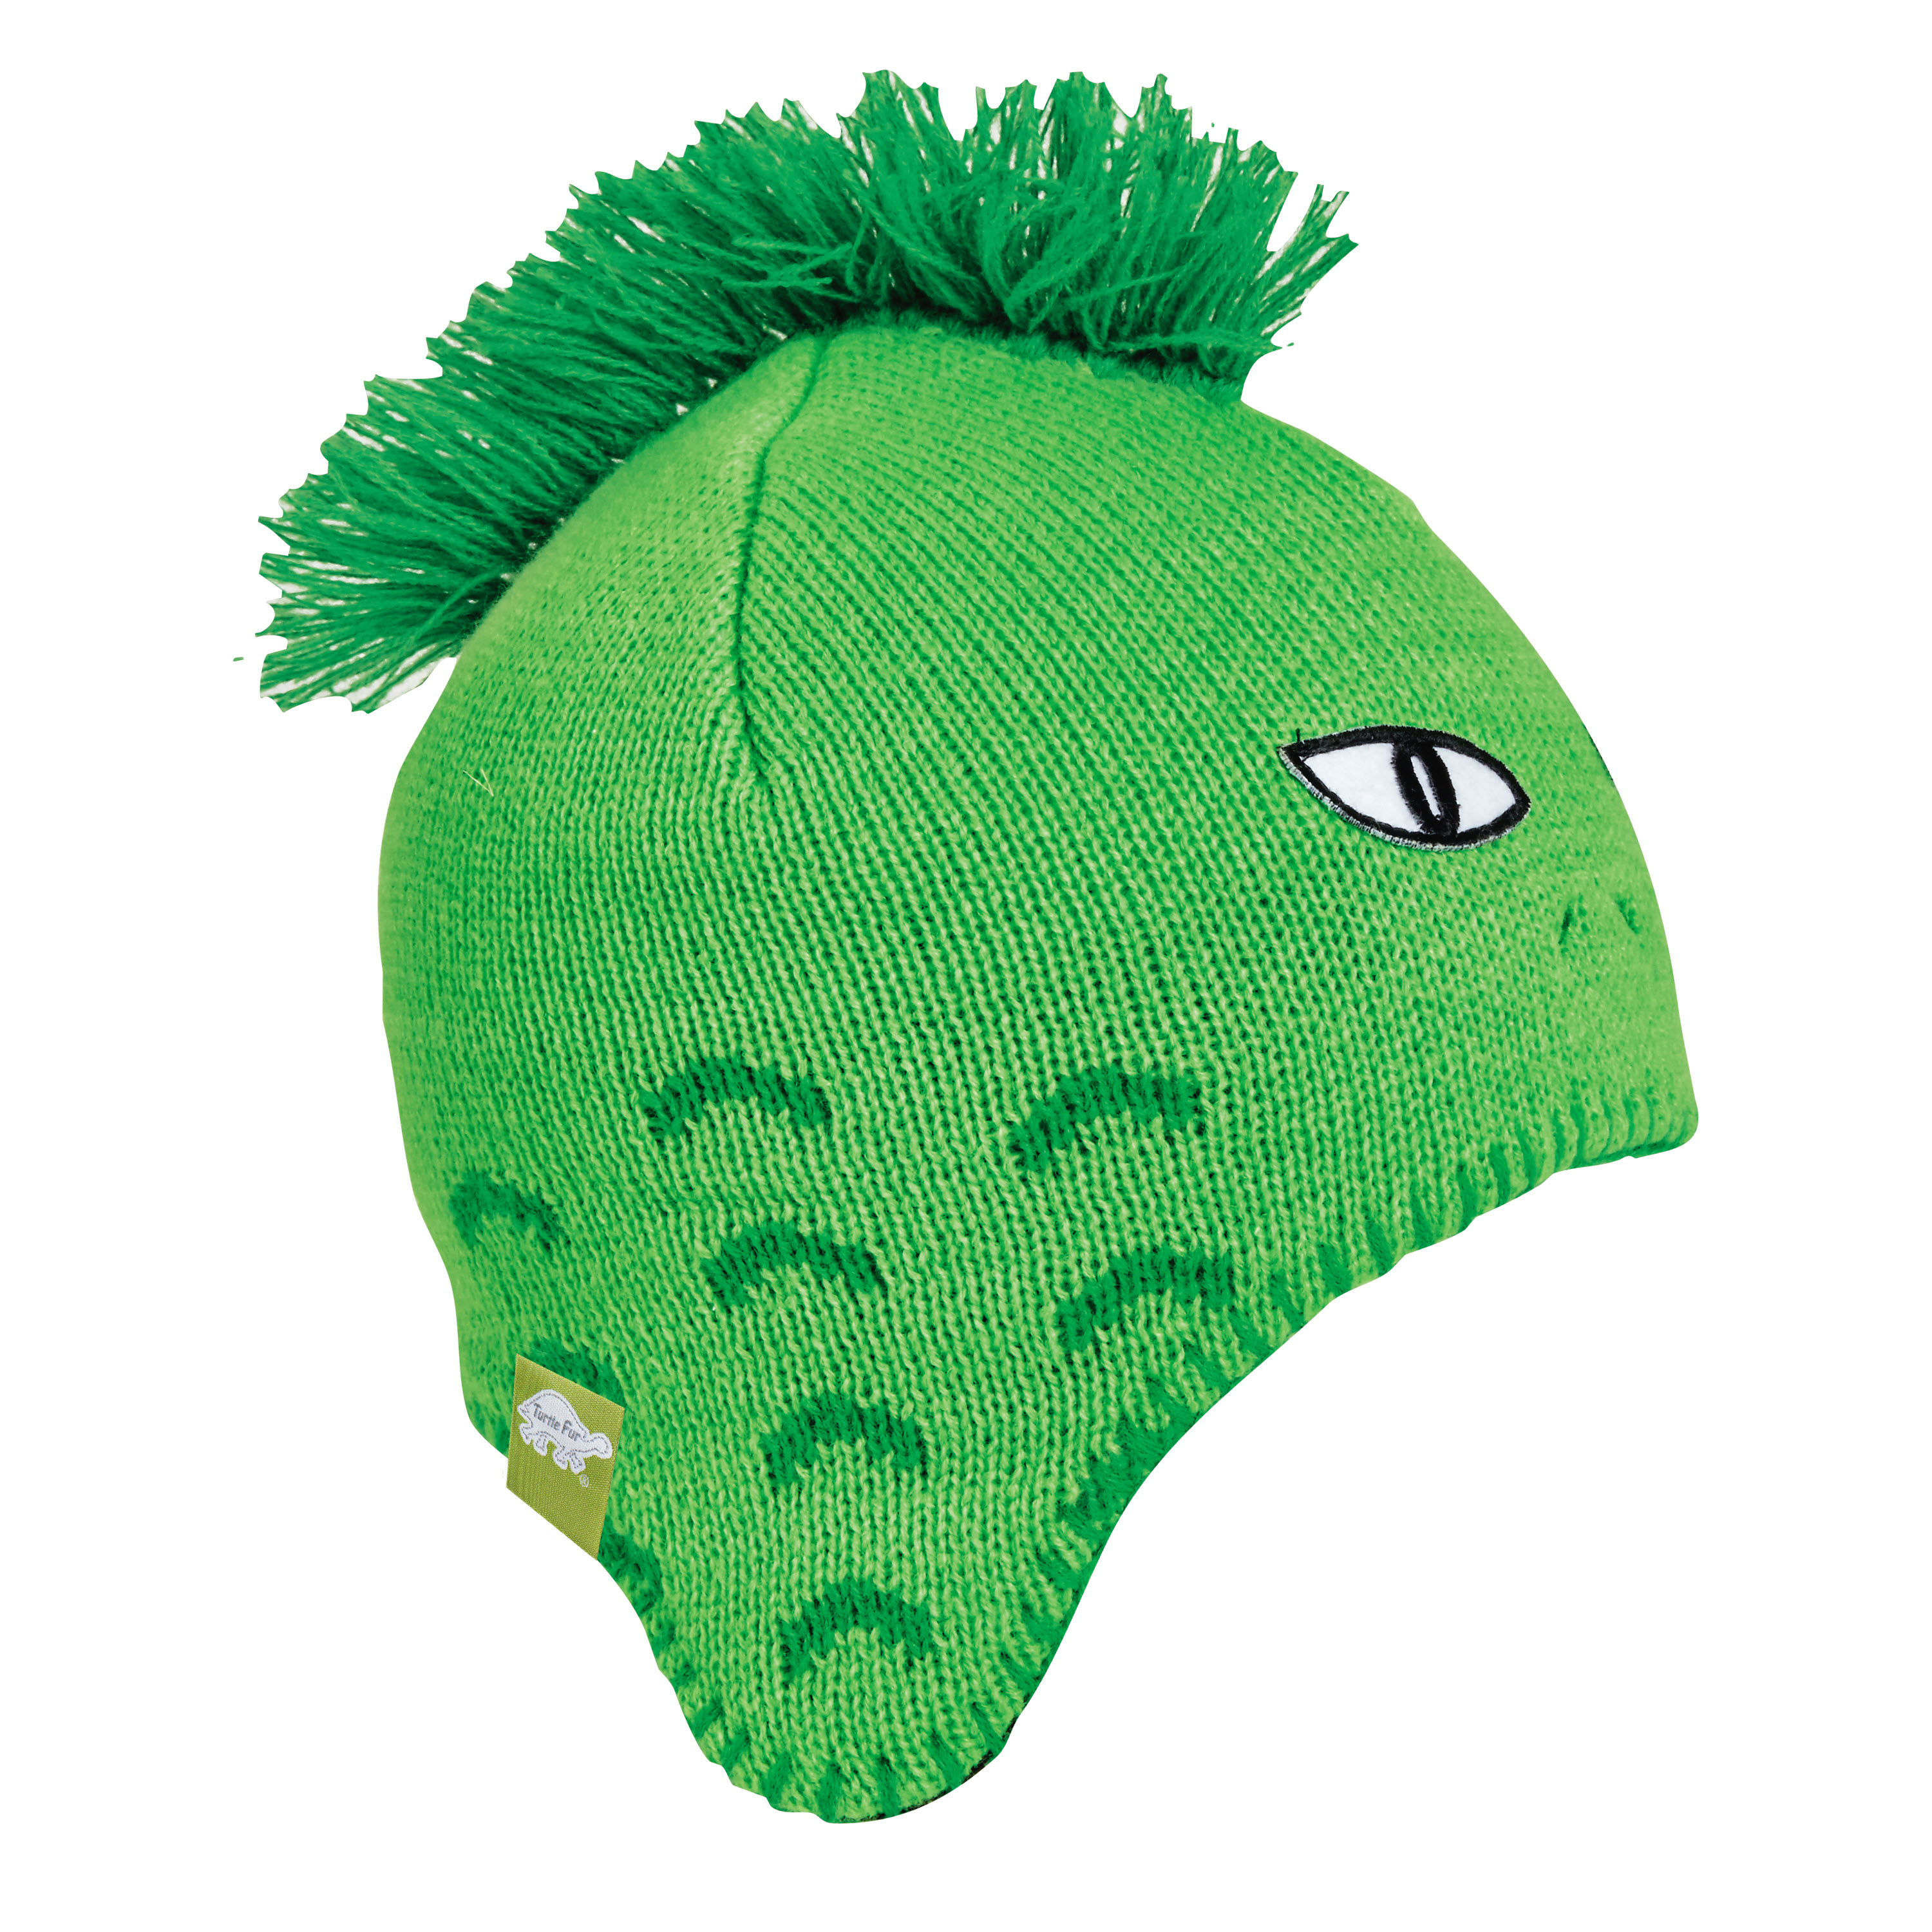 Turtle Fur Kids Lizard Boy Reptile Earflap Winter Hat Flo Green